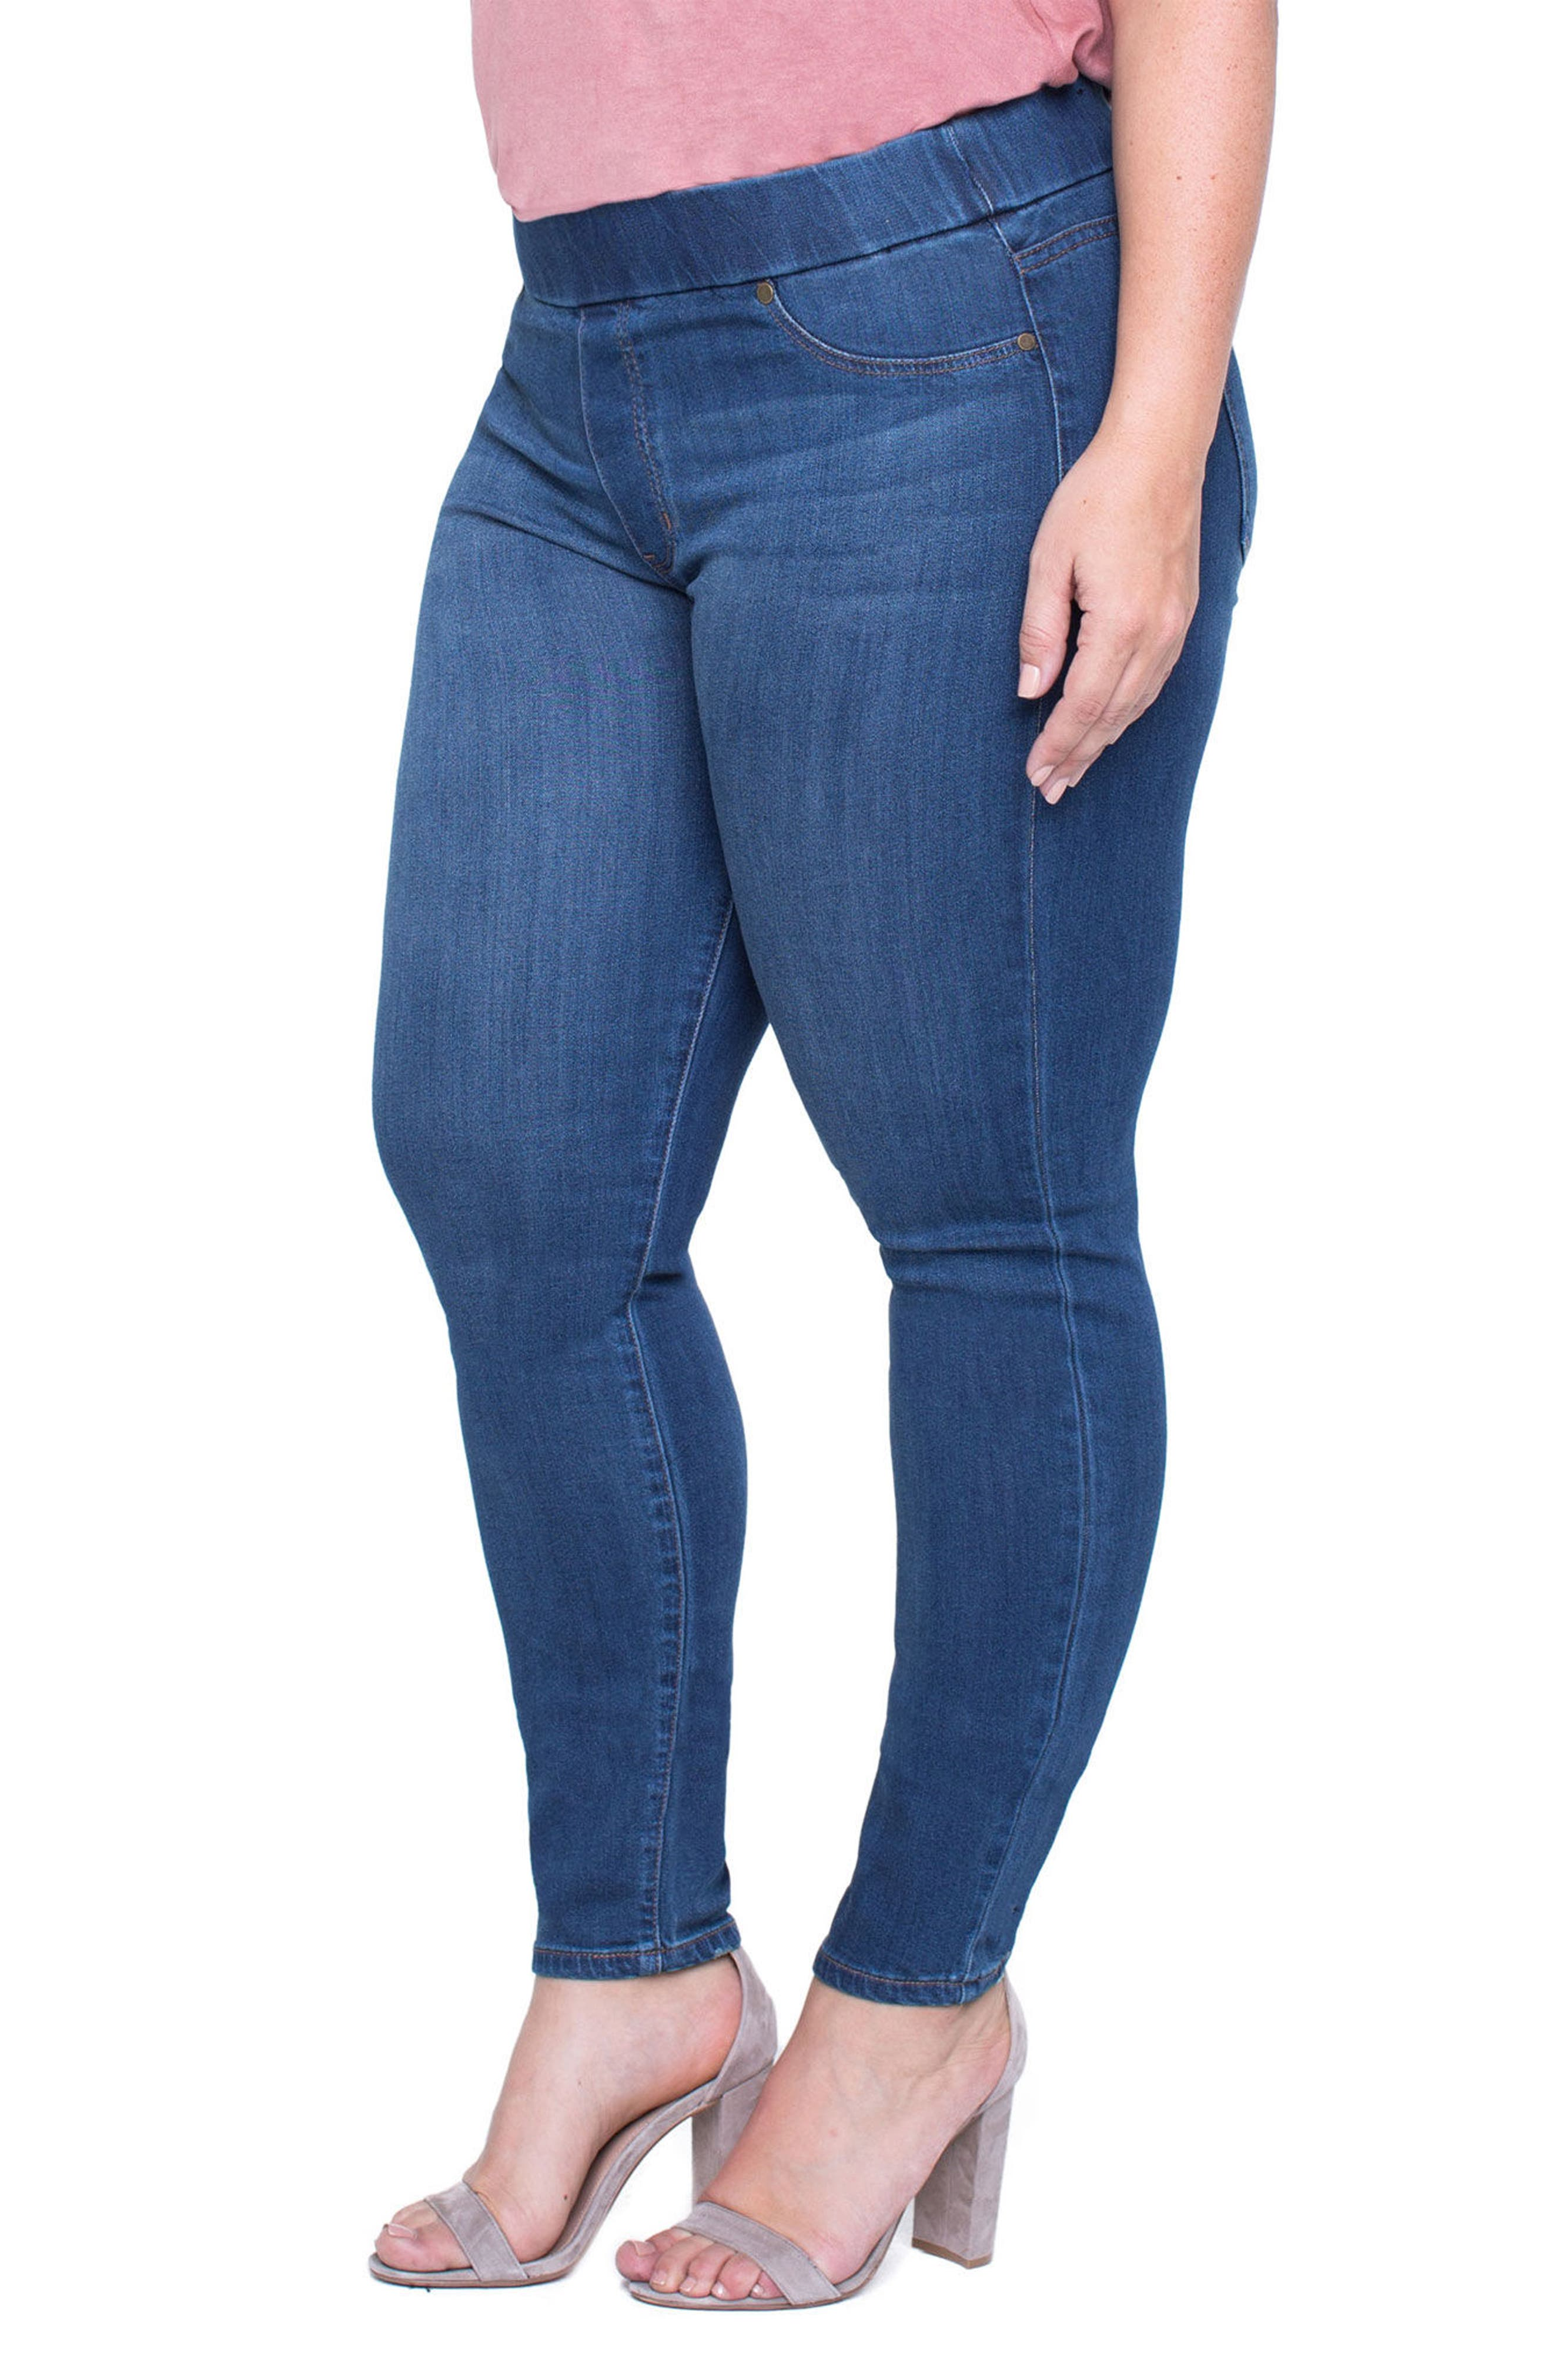 Alternate Image 3  - Liverpool Jeans Company Sienna Knit Denim Leggings (Plus Size)